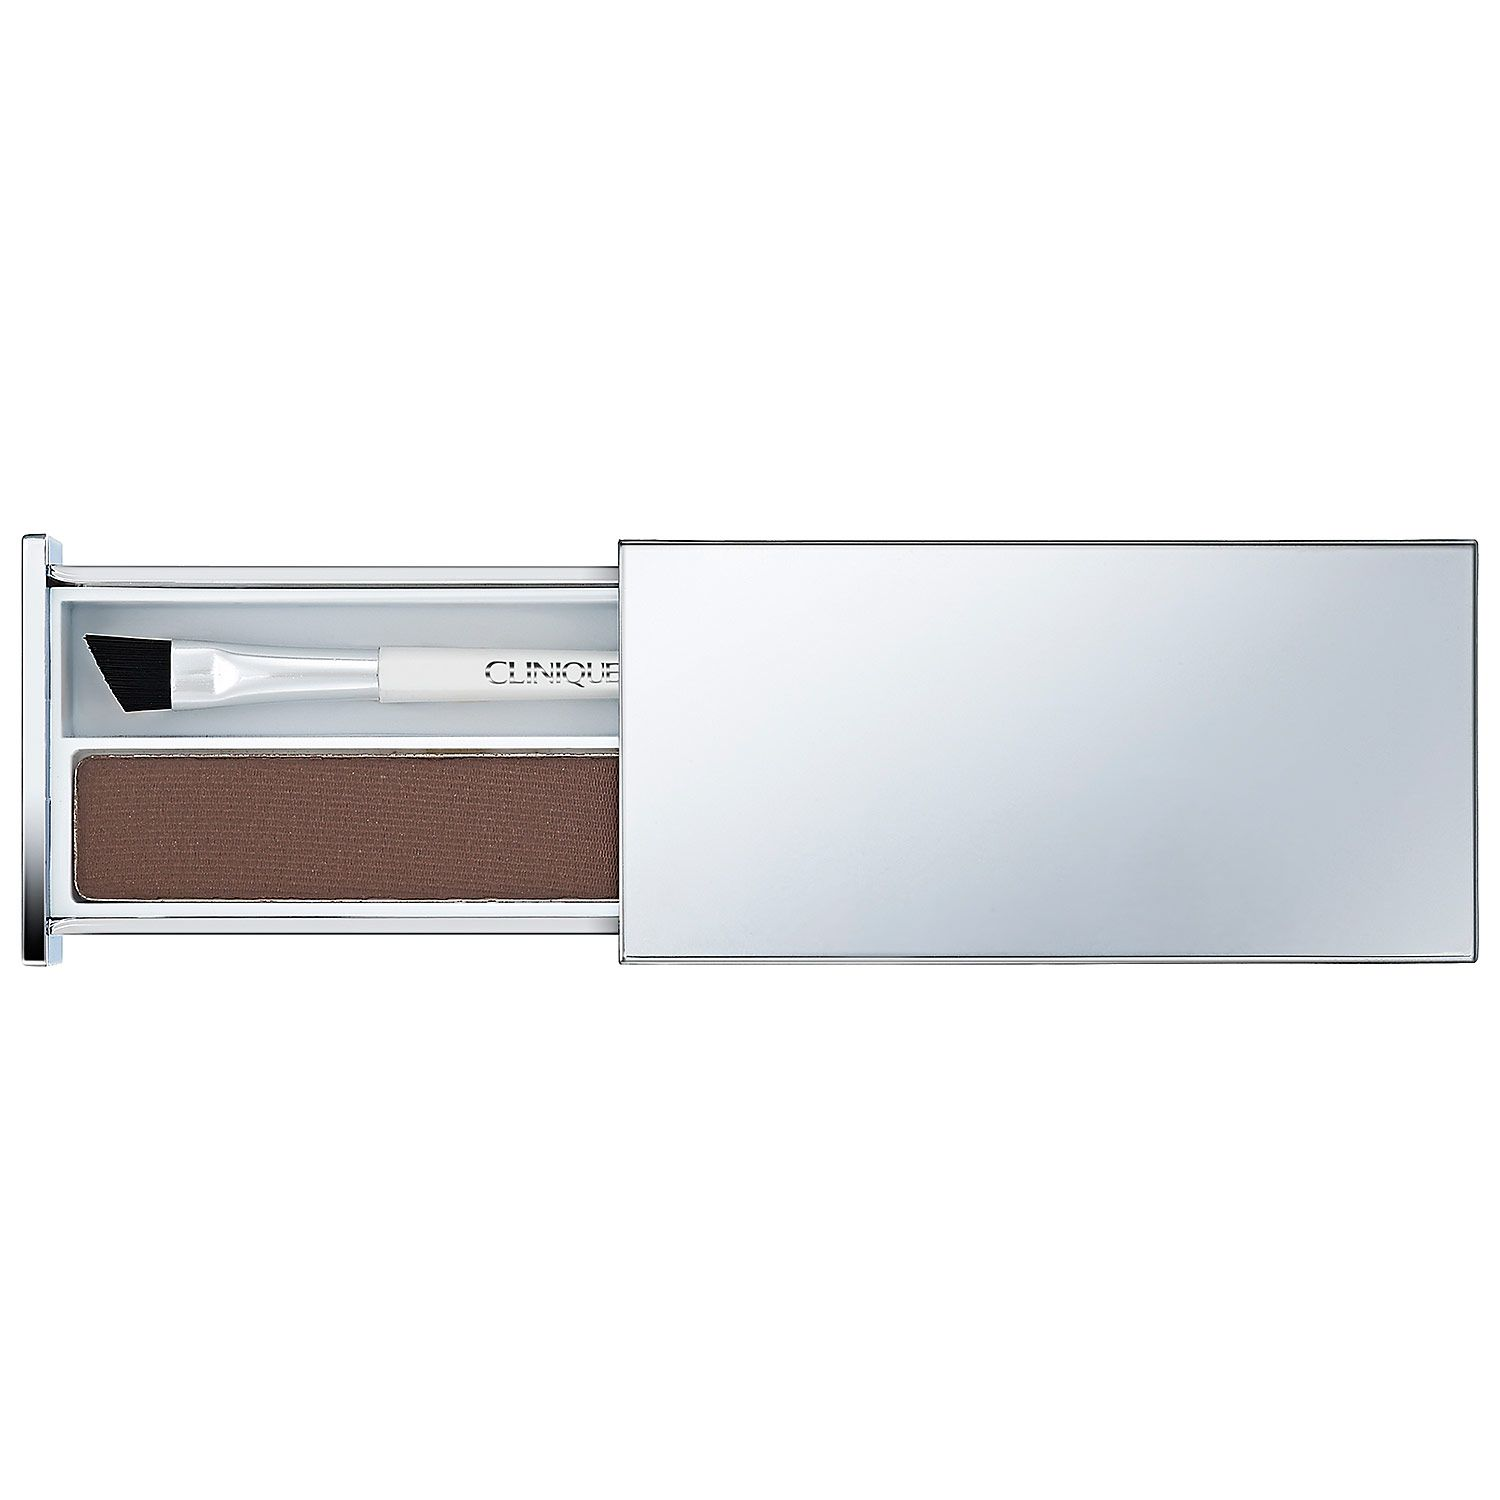 Most Loved Brow Products Clinique Brow Shapera Brow Definer In A